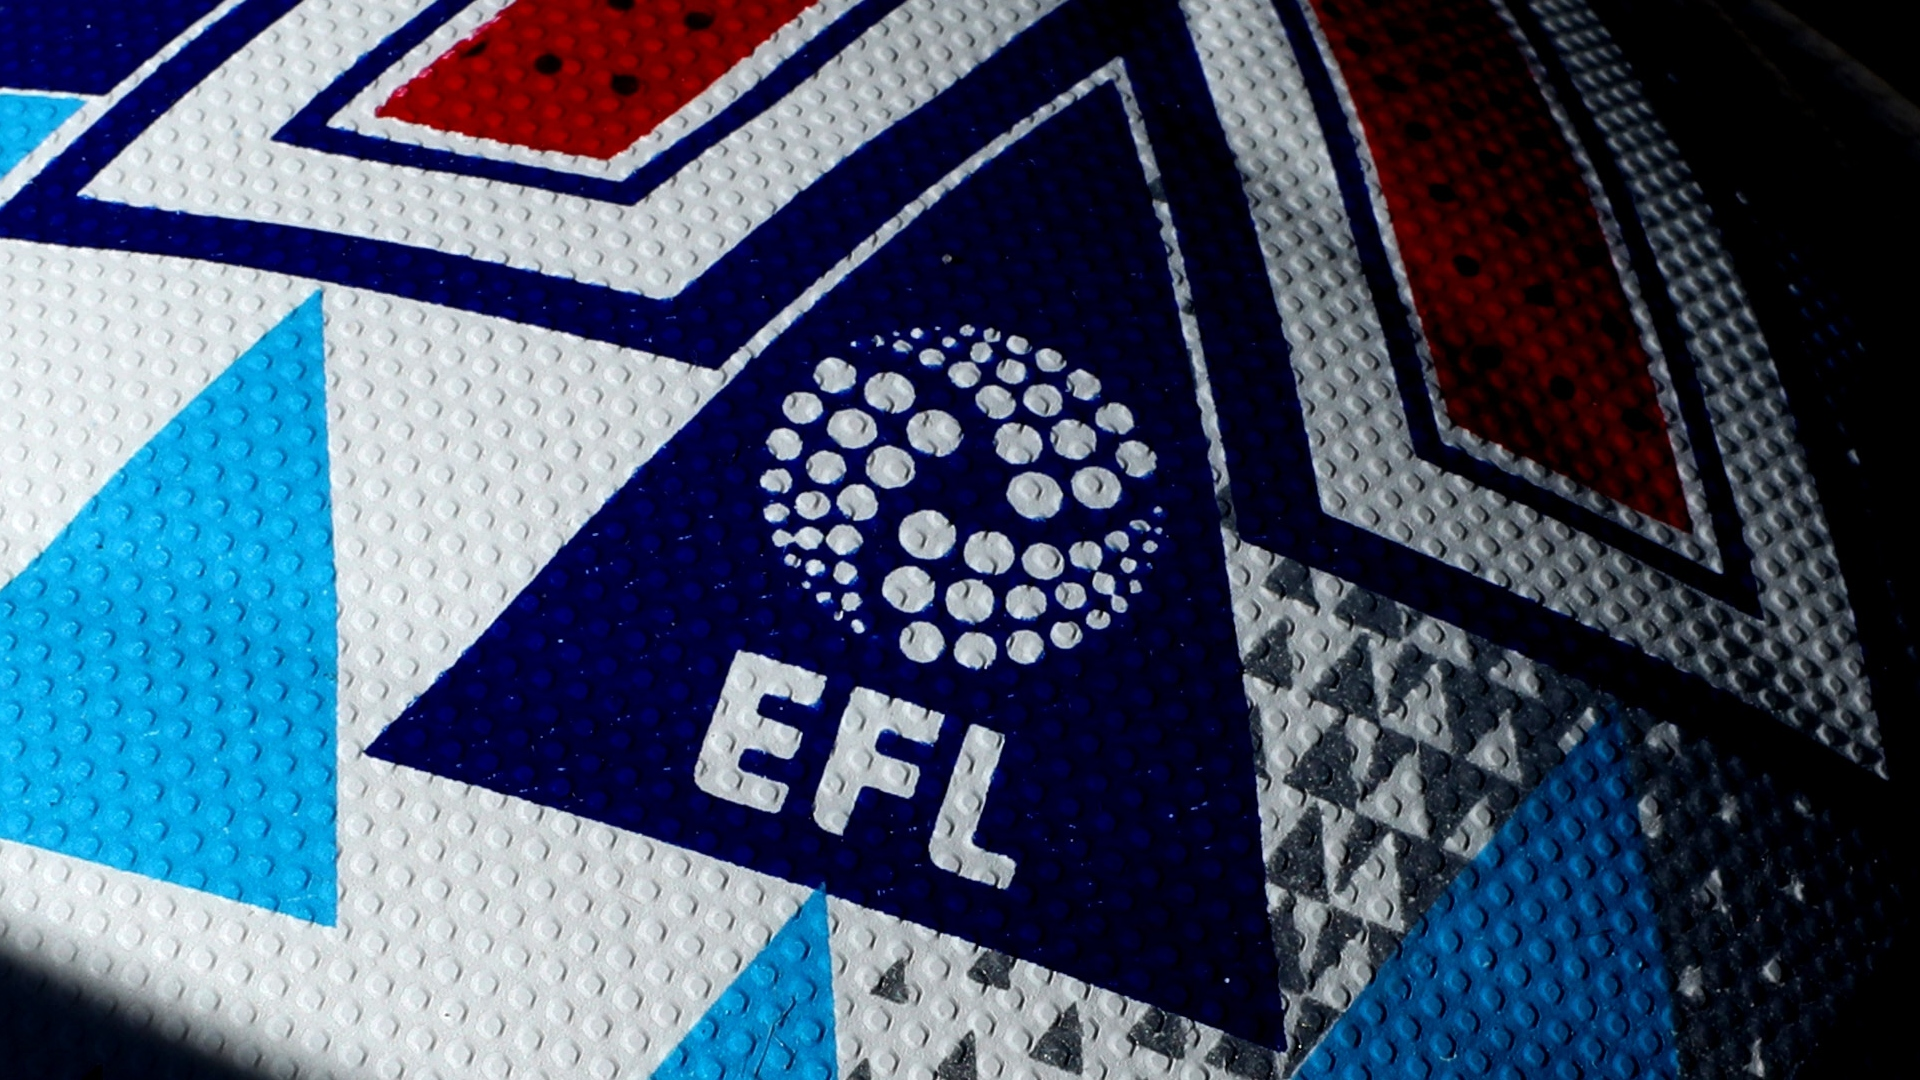 Premier League and EFL agree £250m rescue package